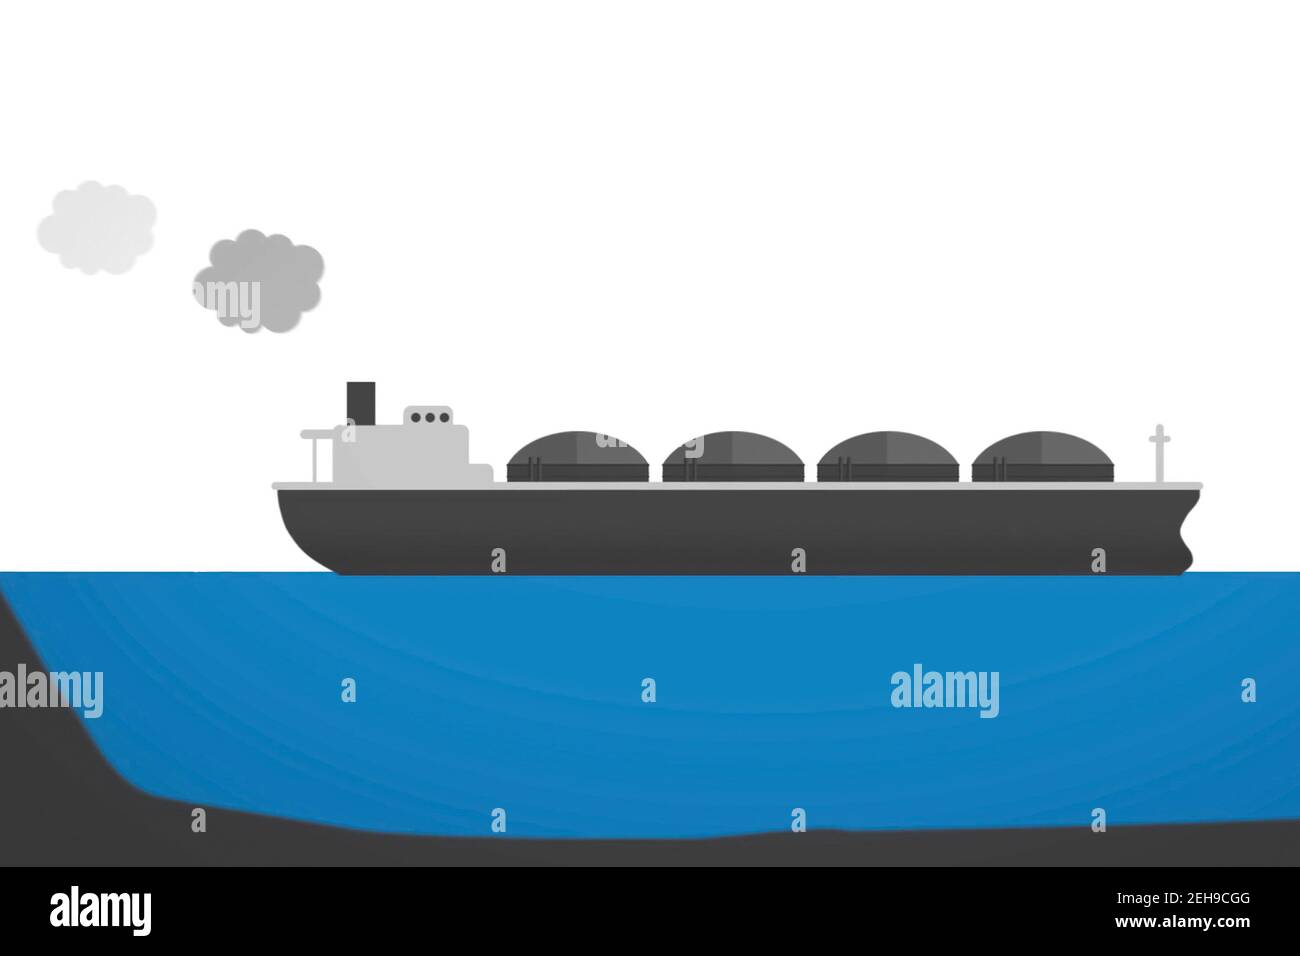 Transportation of liquefied gas on a tanker. Illustration of the hydrocarbon transportation scheme. Stock Photo